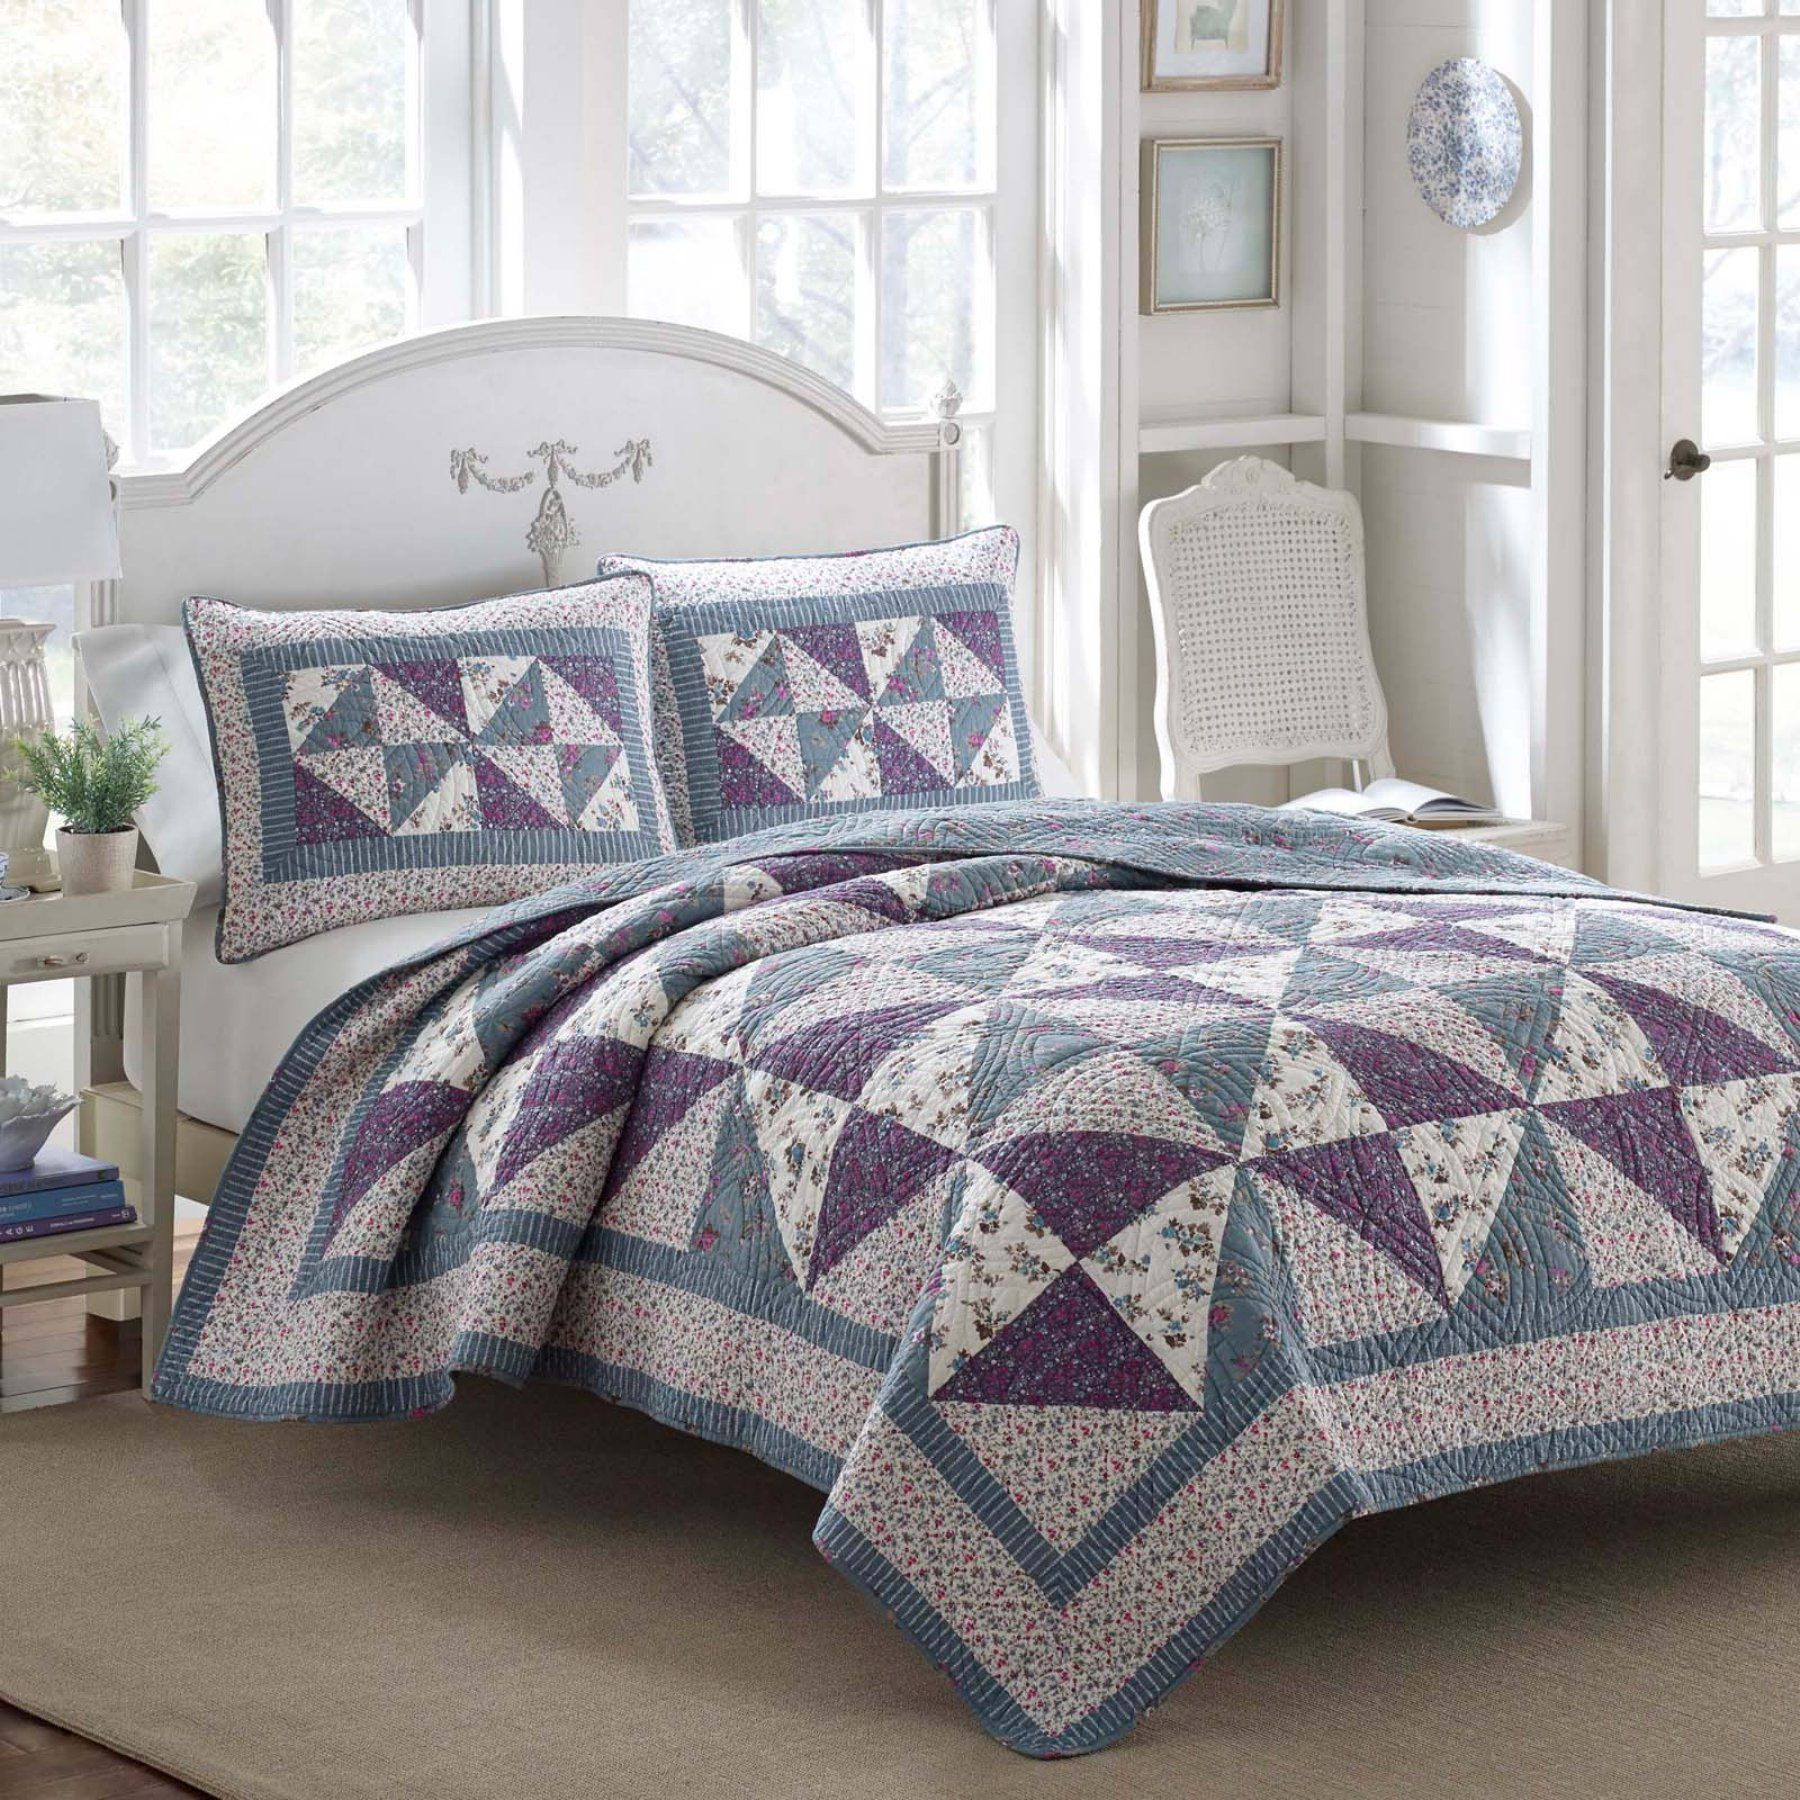 Selena Cotton Quilt by Laura Ashley 210438 Bedding